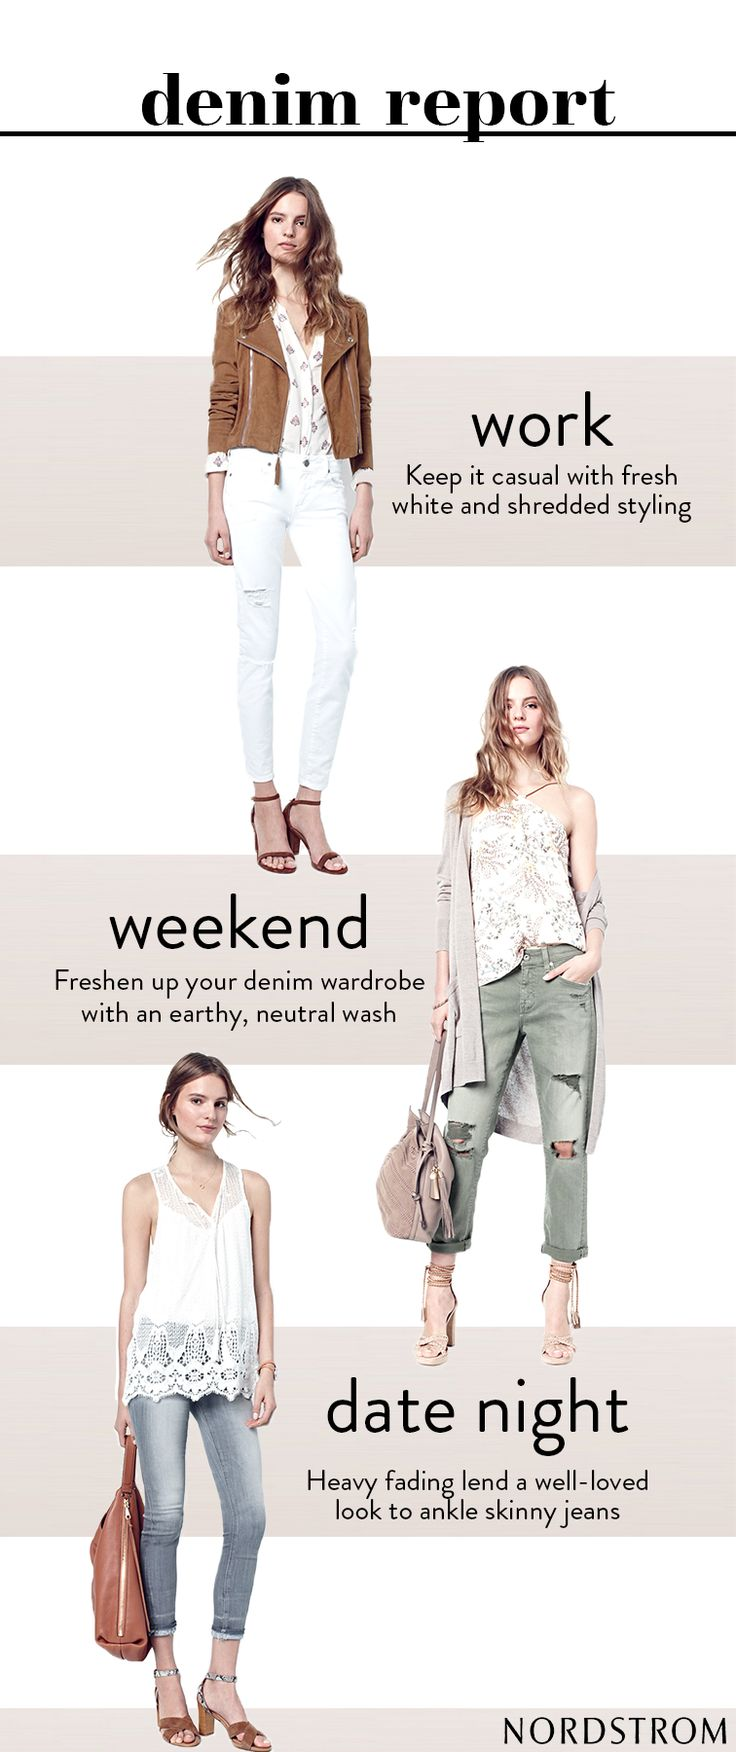 Jeans are a staple in anyone's wardrobe. Leave it to Nordstrom to be your one stop denim shop for any occasion. Here's a guide on how to wear the newest Spring arrivals 3 different ways. Find the latest cuts, colors and details at Nordstrom today.